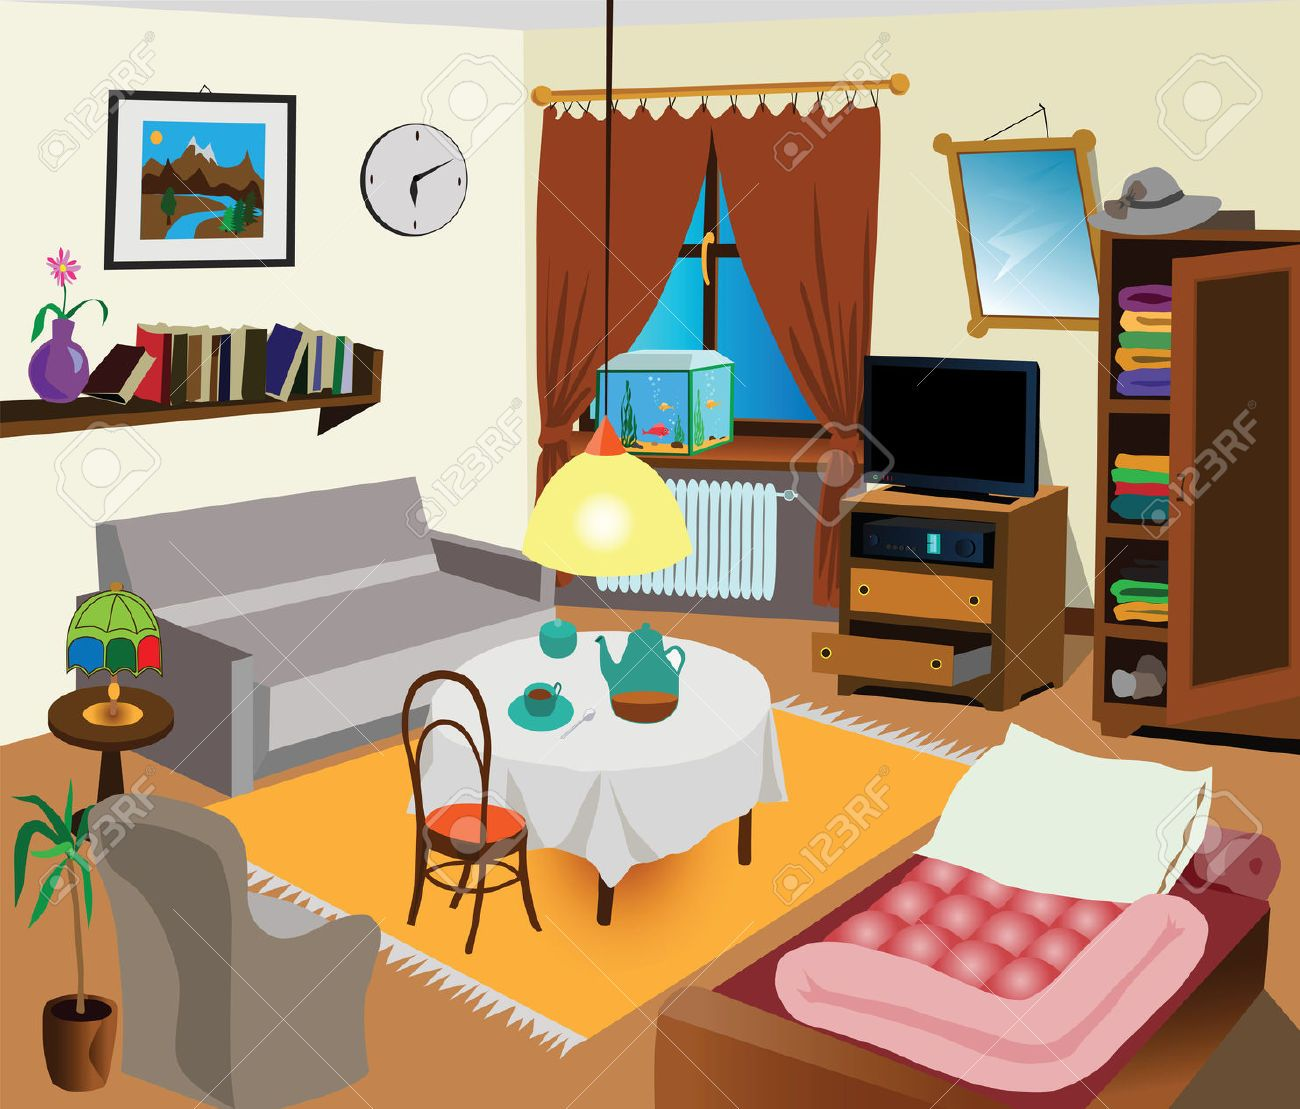 Living Room Clipart Google Search Living Room Clipart Kids